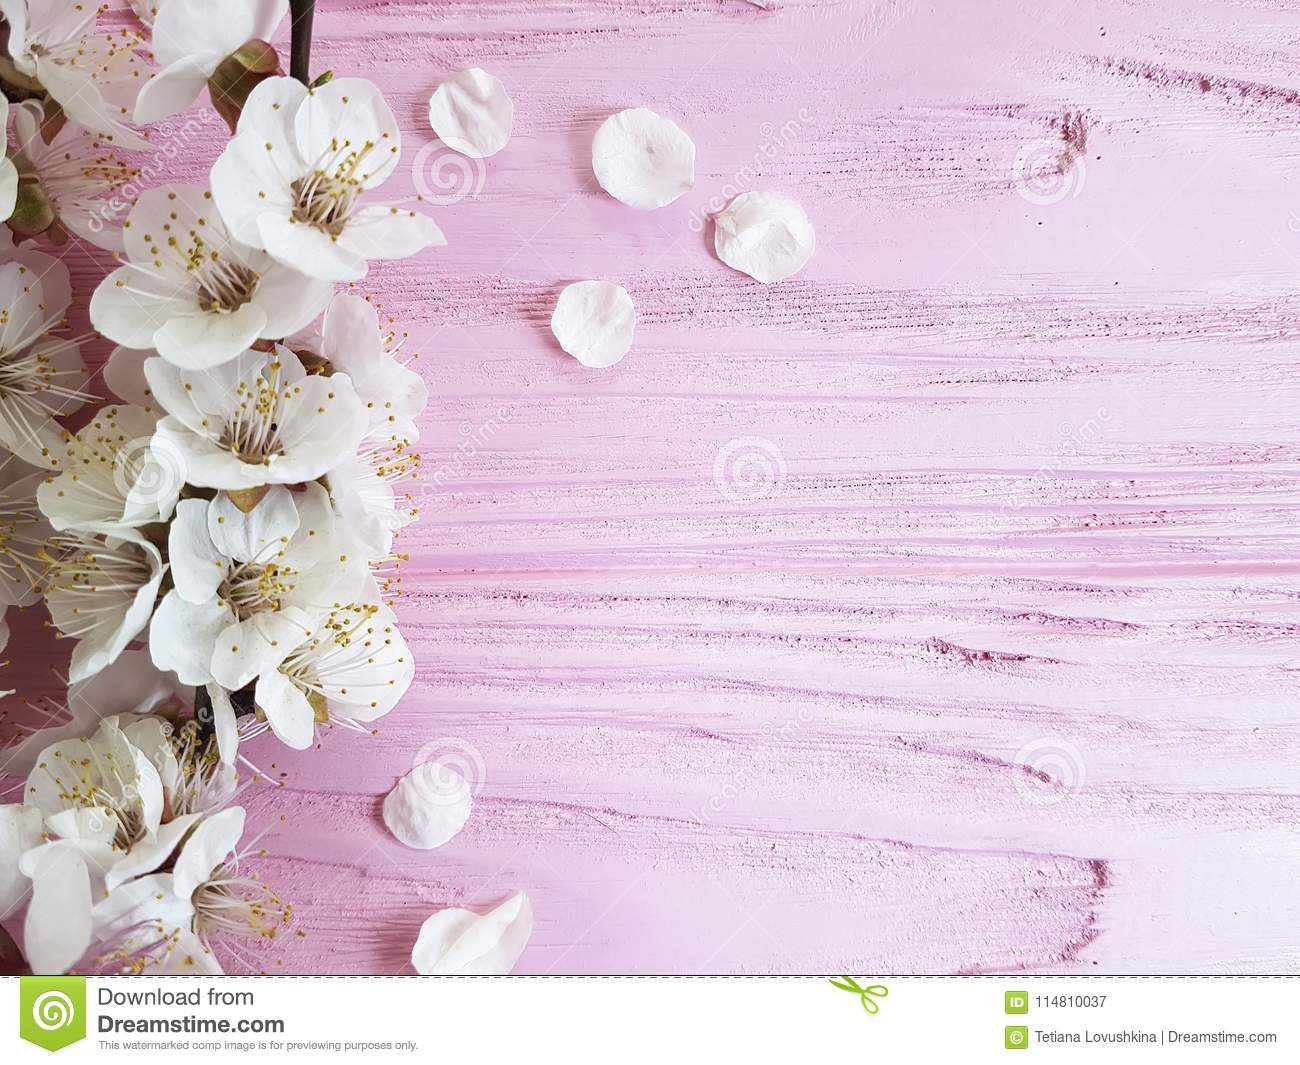 Cherry blossom branch fresh vintage spring on a pink wooden background